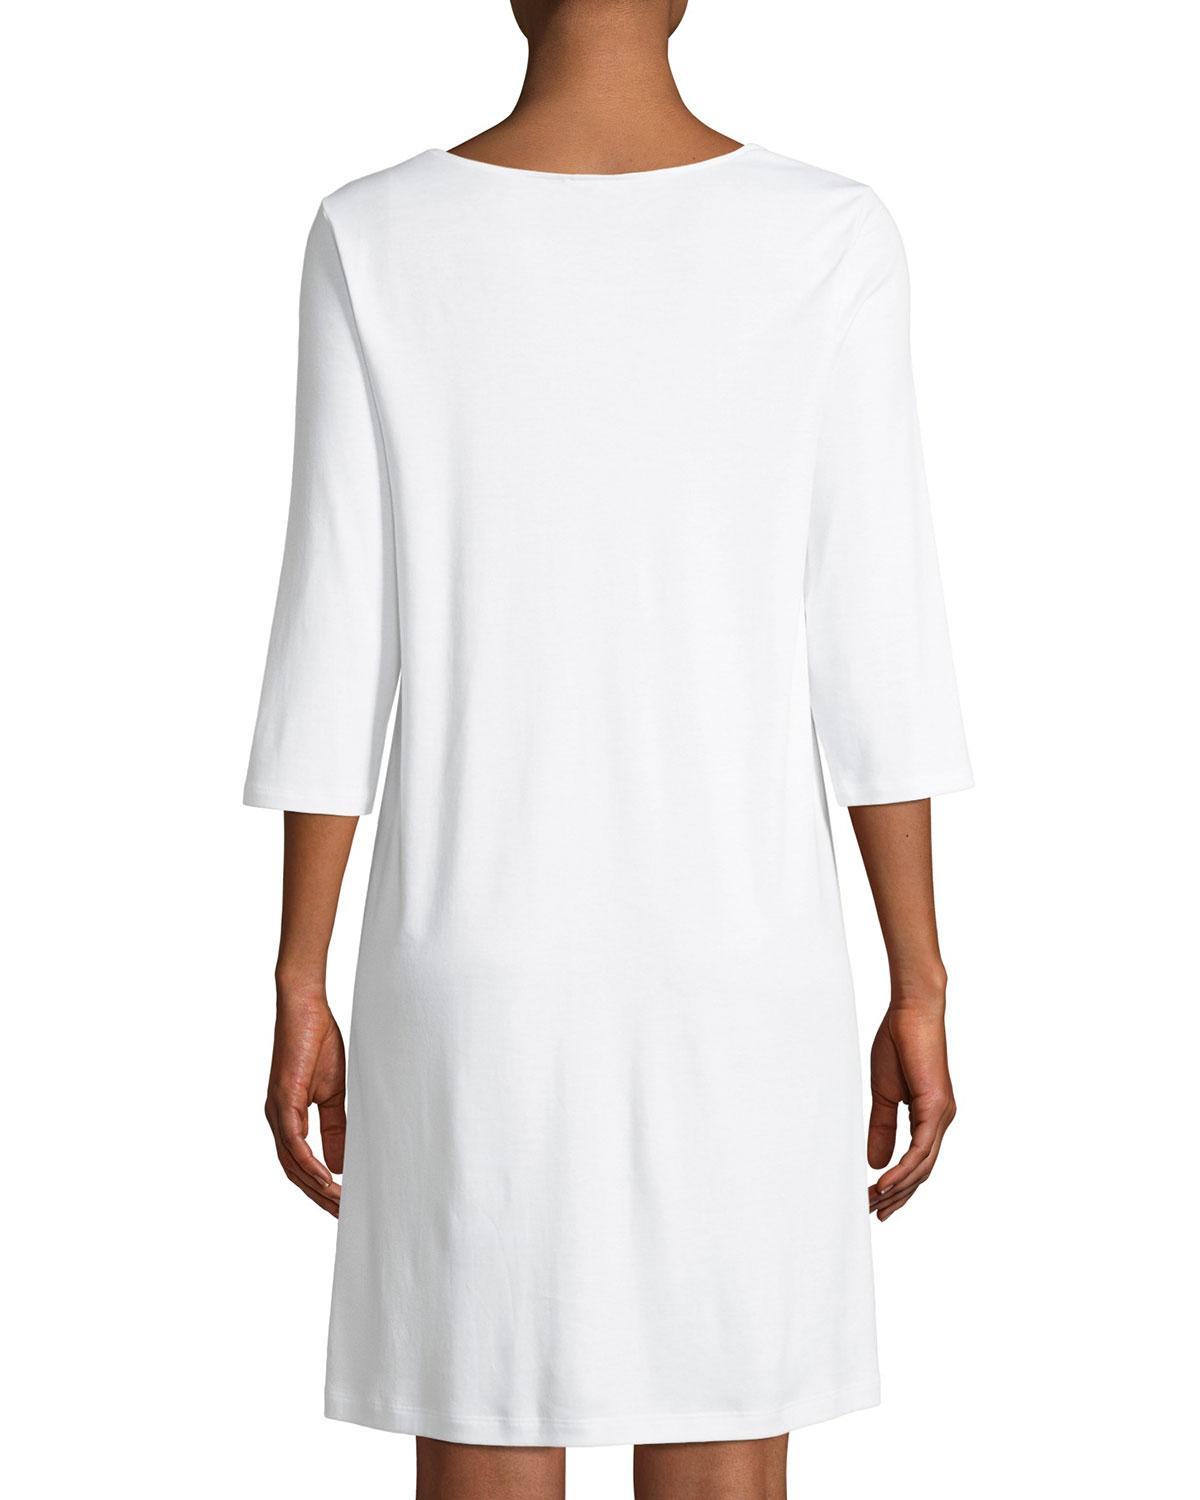 224d2cdb3b55 Lyst - Hanro Moments 3 4 Sleeve Nightgown in White